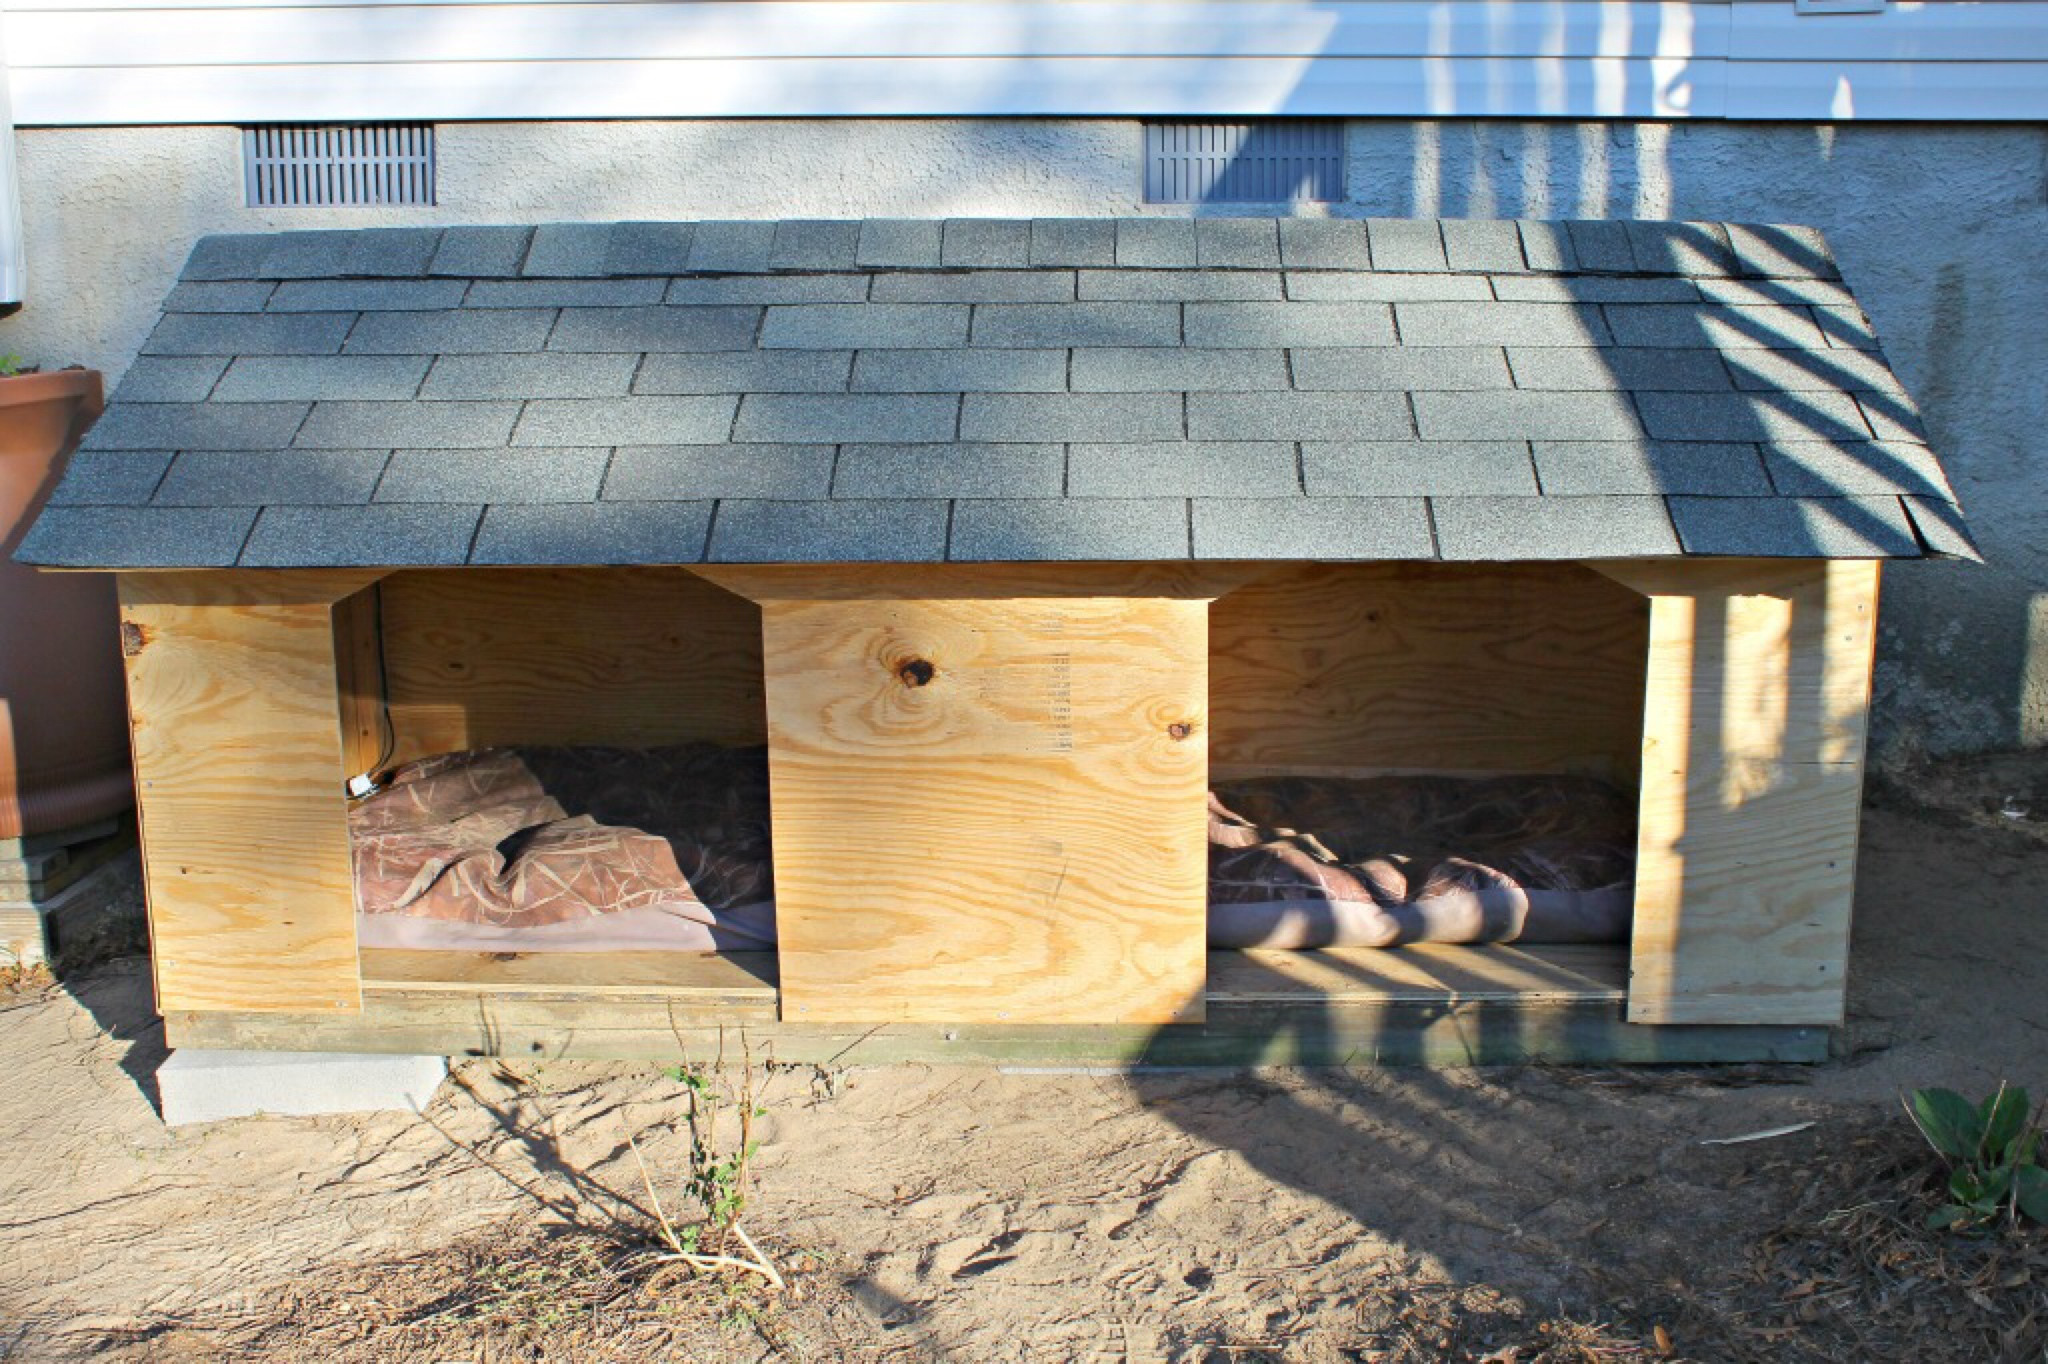 Best ideas about DIY Dog House Kits . Save or Pin 5 Droolworthy DIY Dog House Plans Now.